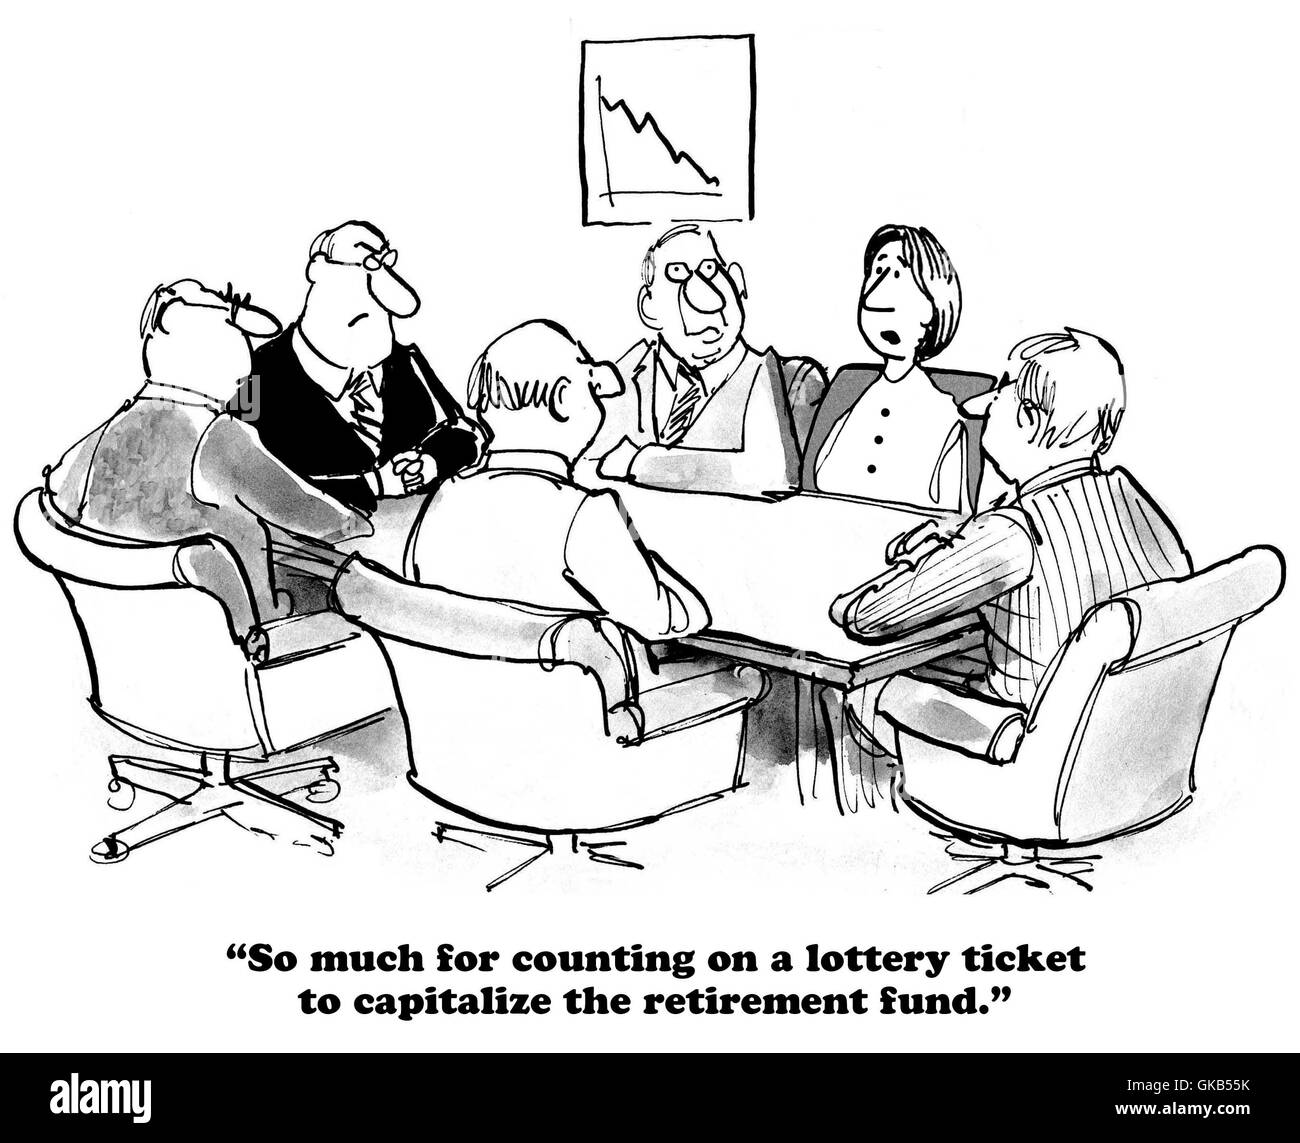 Business cartoon about an under capitalized retirement fund. - Stock Image